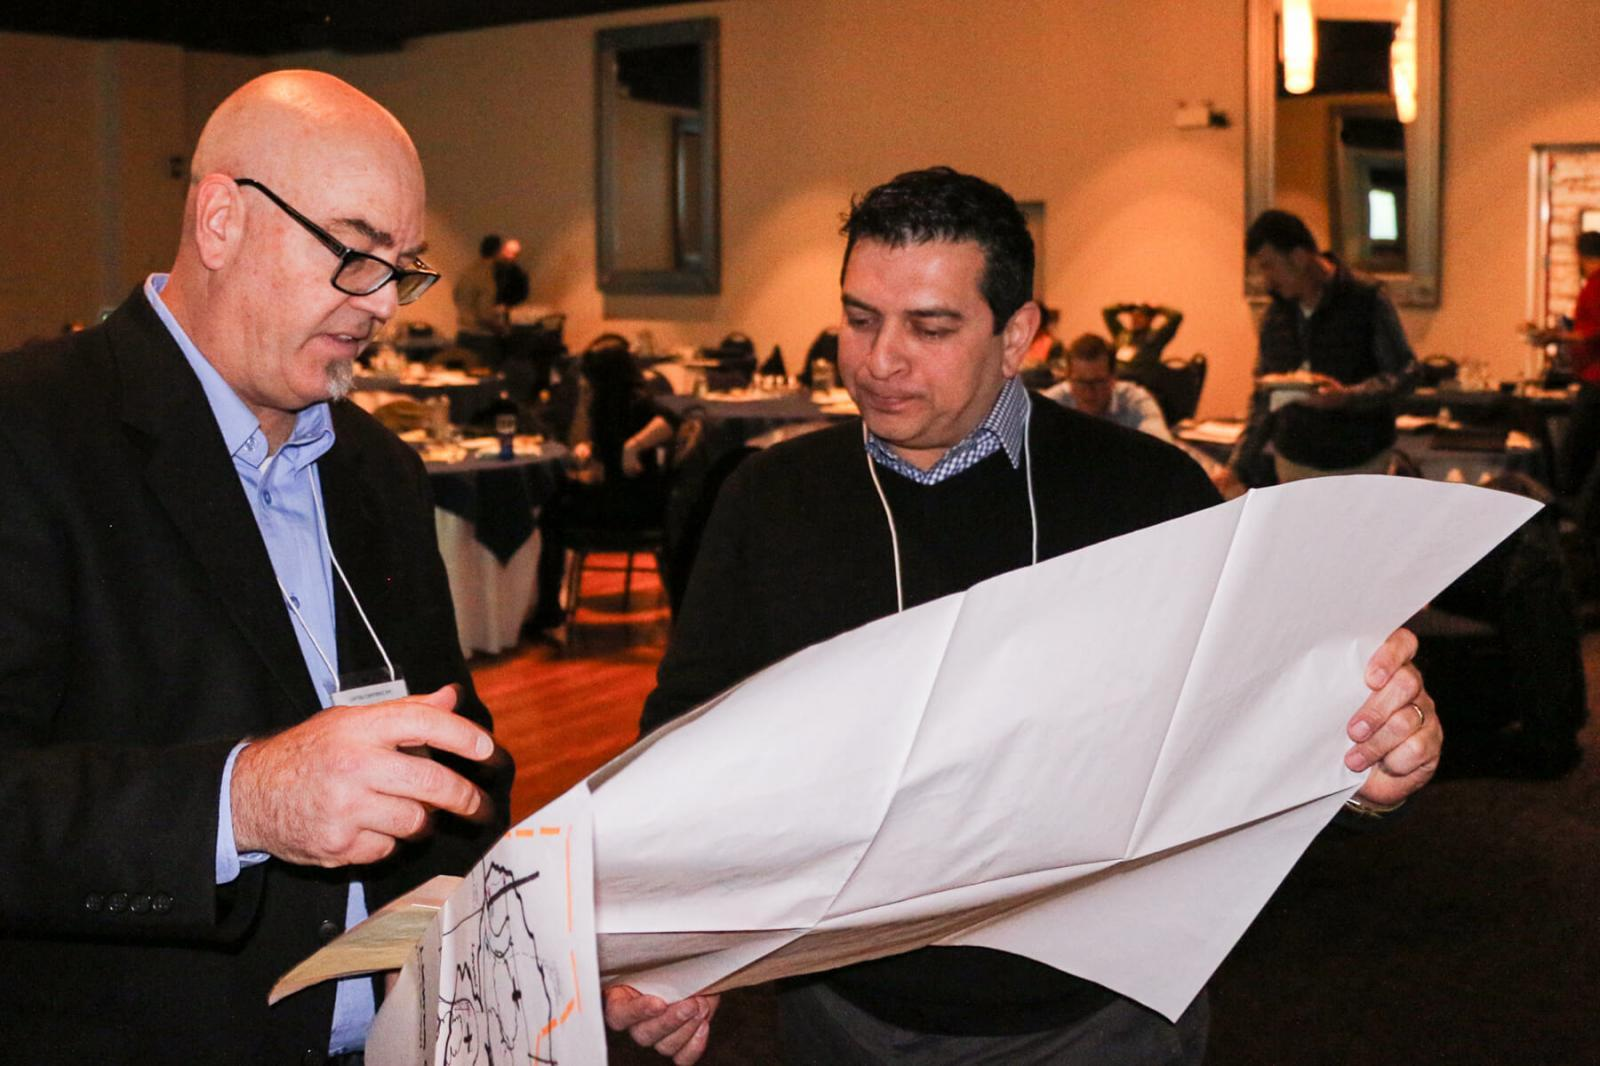 Event speaker Mark Carlson (left) shows one of his landscape lighting plans to Carl Hastings of Moonstruck Lighting.